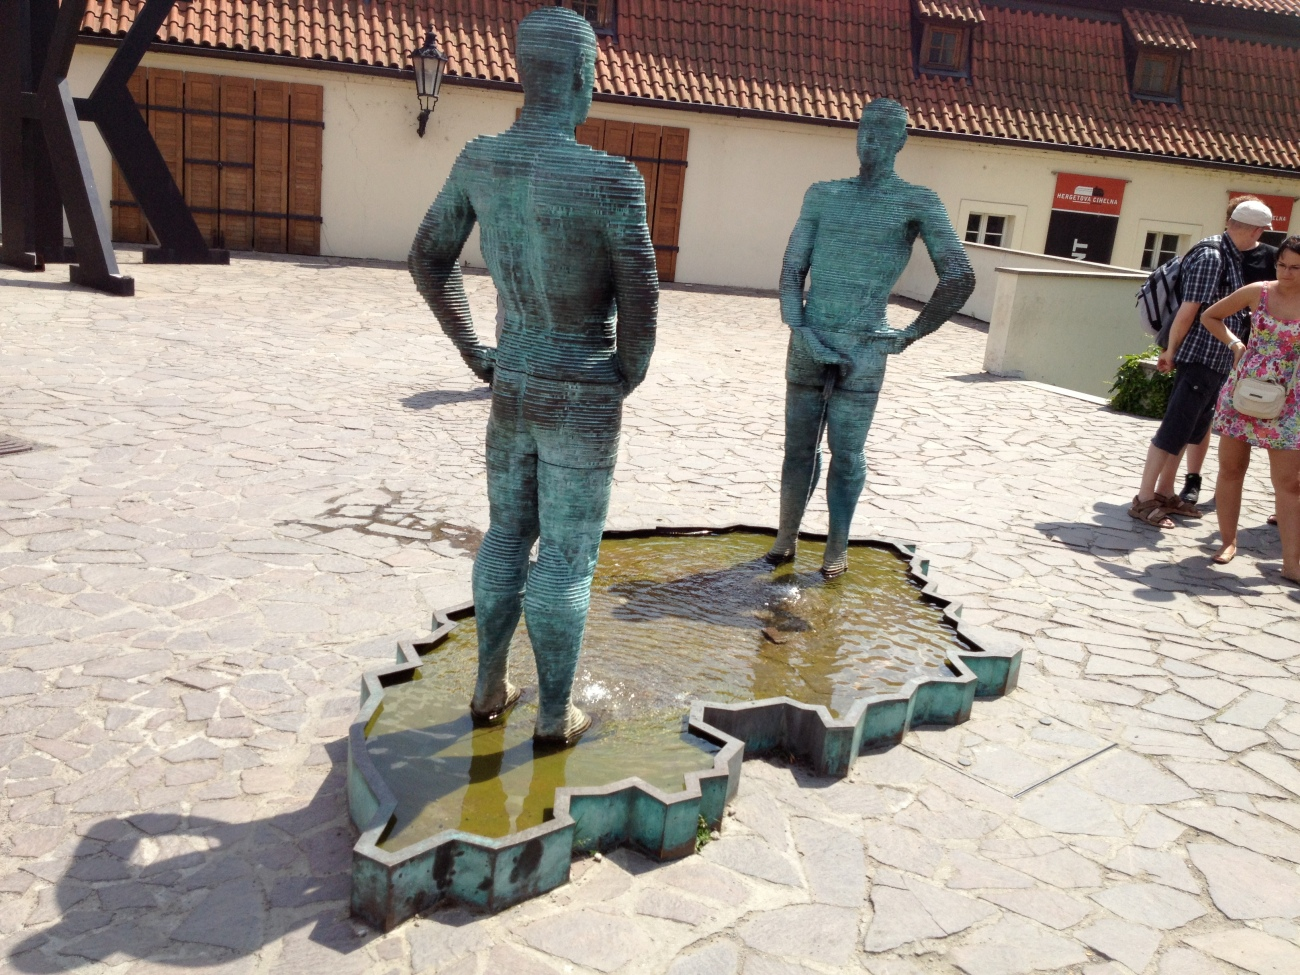 The Pissing Men. That is a map of the Czech Republic they are standing in. Their hips, Anthony Wieners, and hands move to spell out words in the water below.